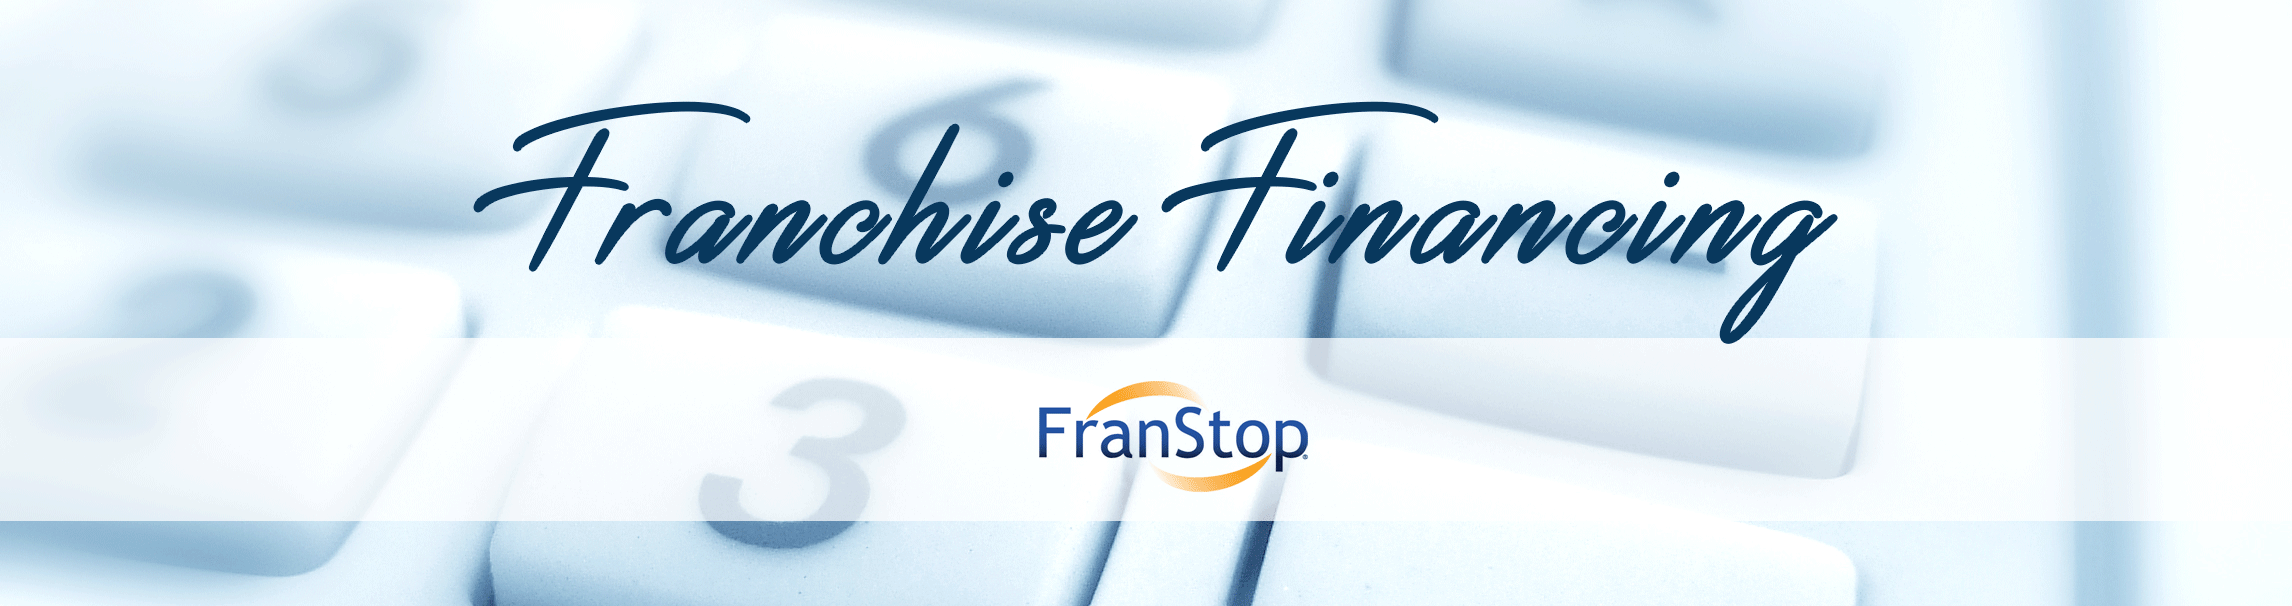 Franchise_FranStop_Franchise_Buy_Sell_Franchising_Financing